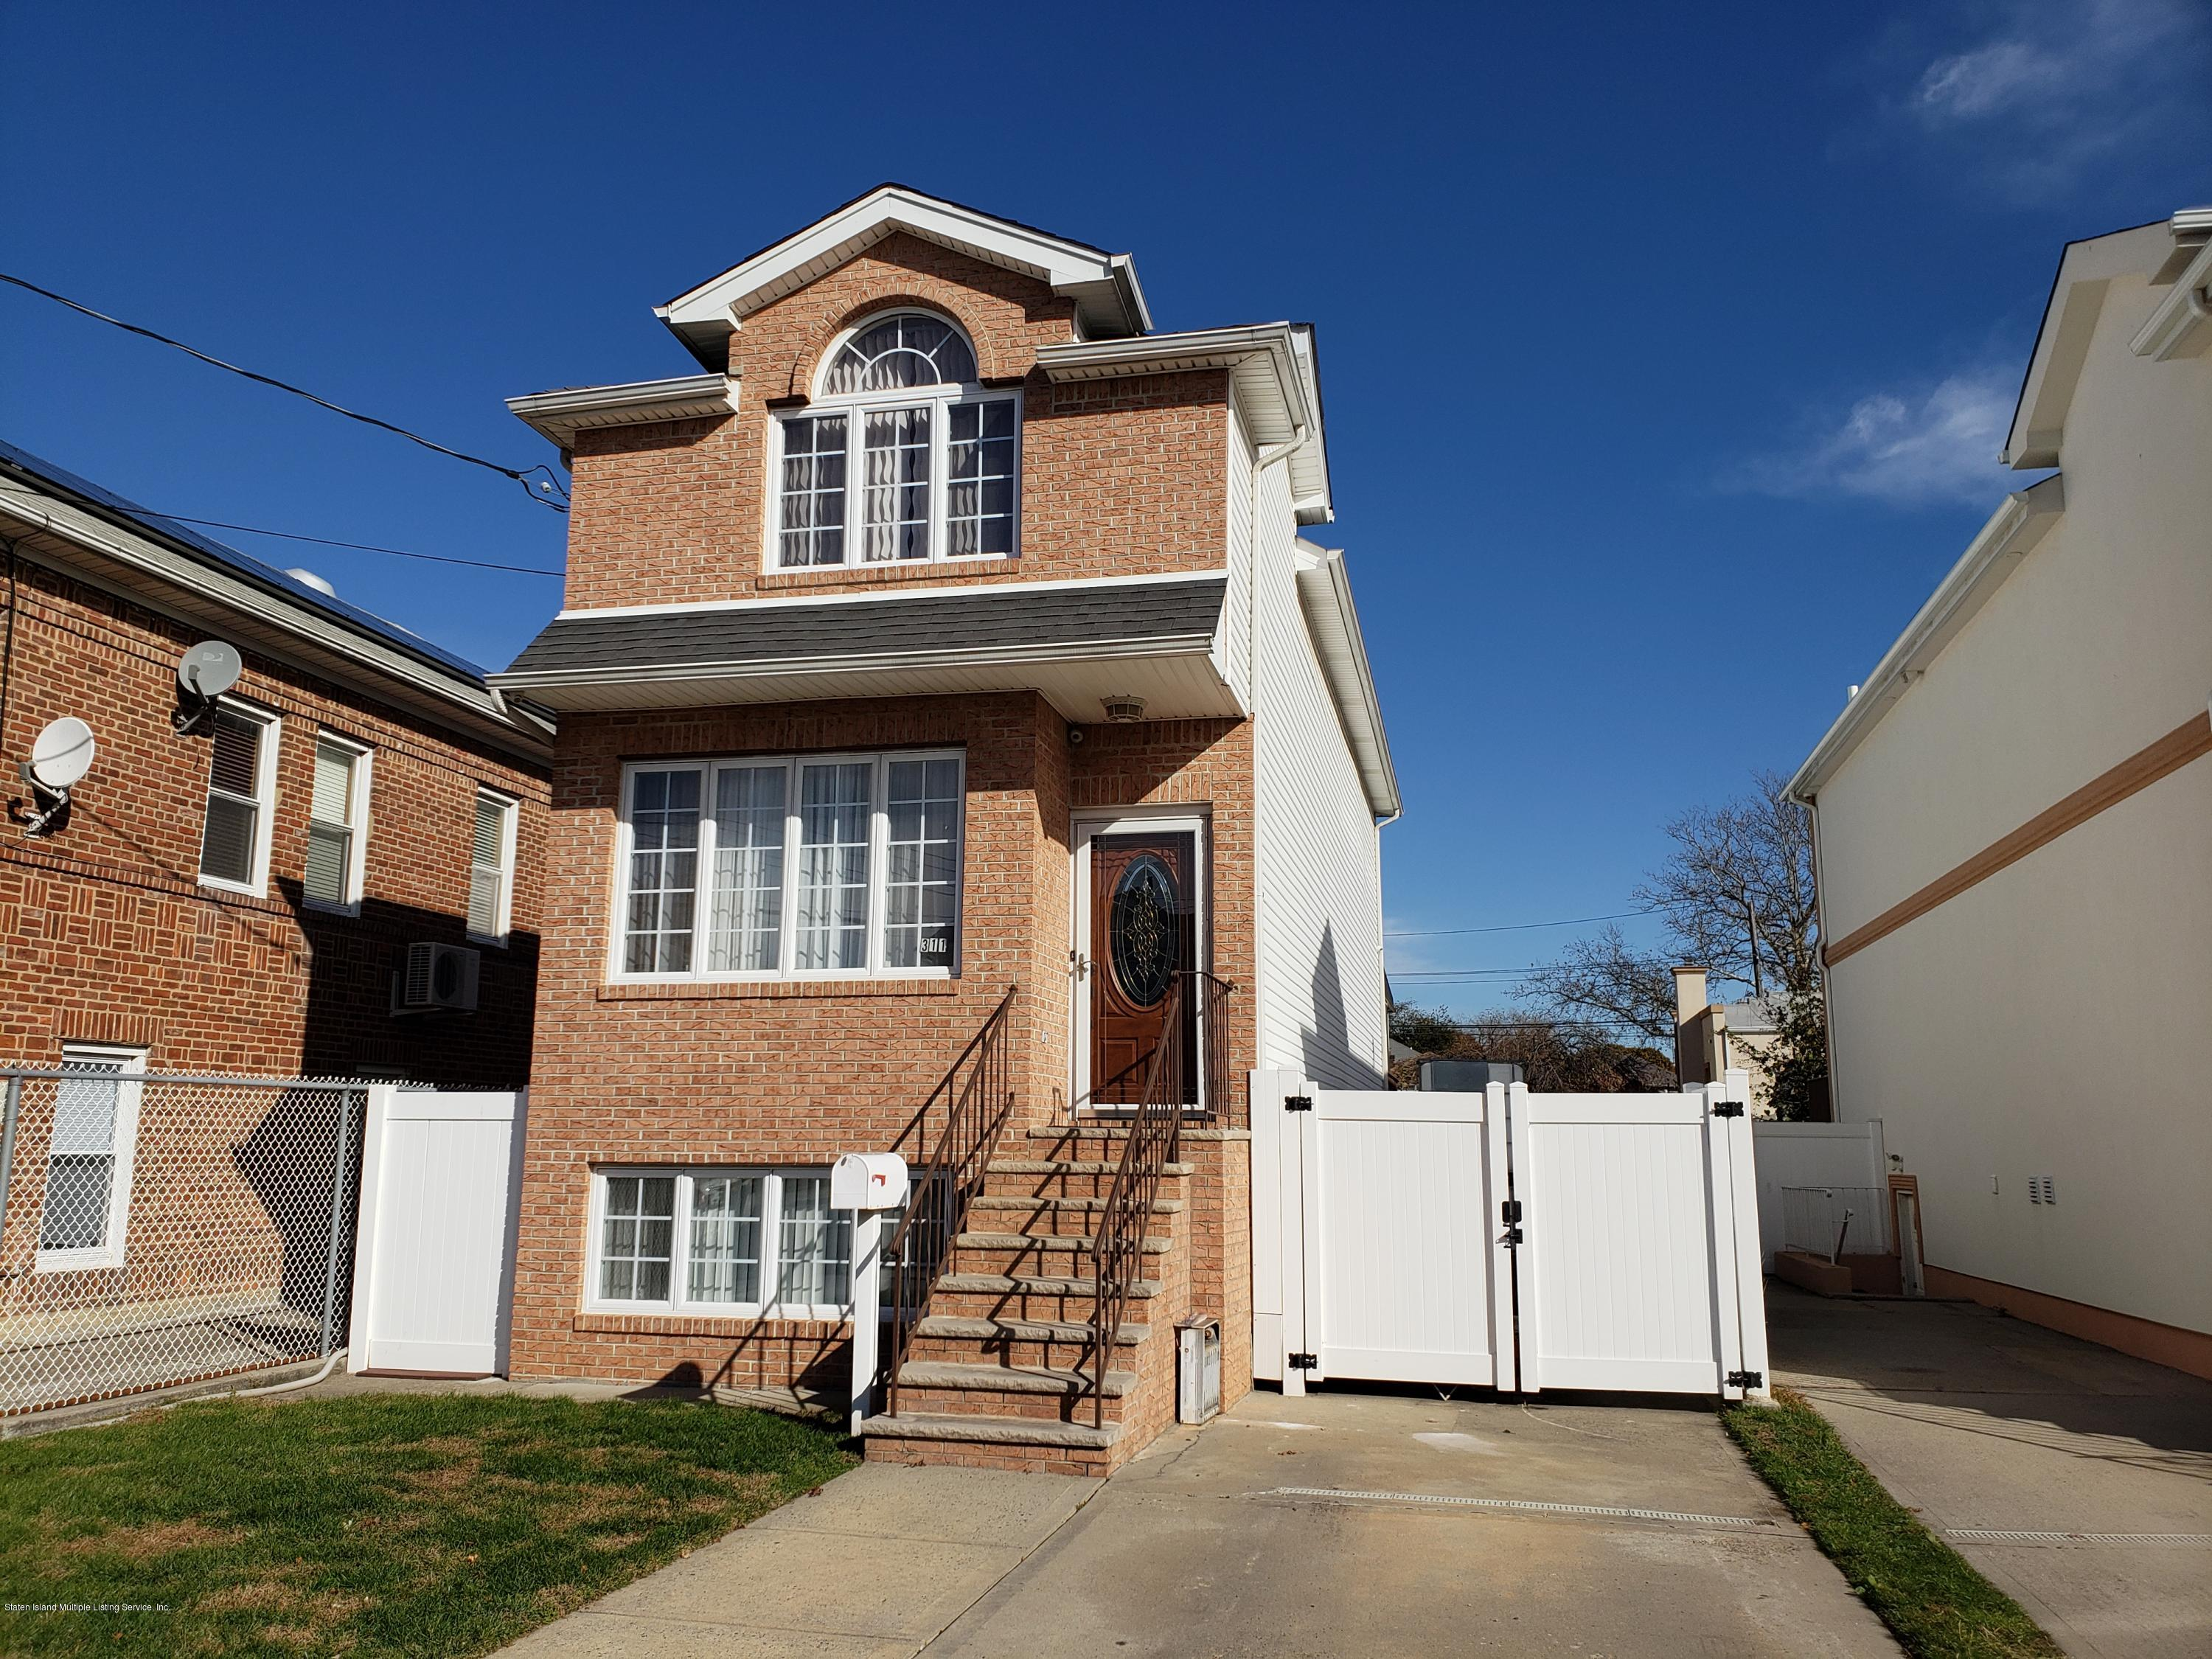 311 Norway Avenue,Staten Island,New York,10305,United States,3 Bedrooms Bedrooms,6 Rooms Rooms,2 BathroomsBathrooms,Residential,Norway,1124511